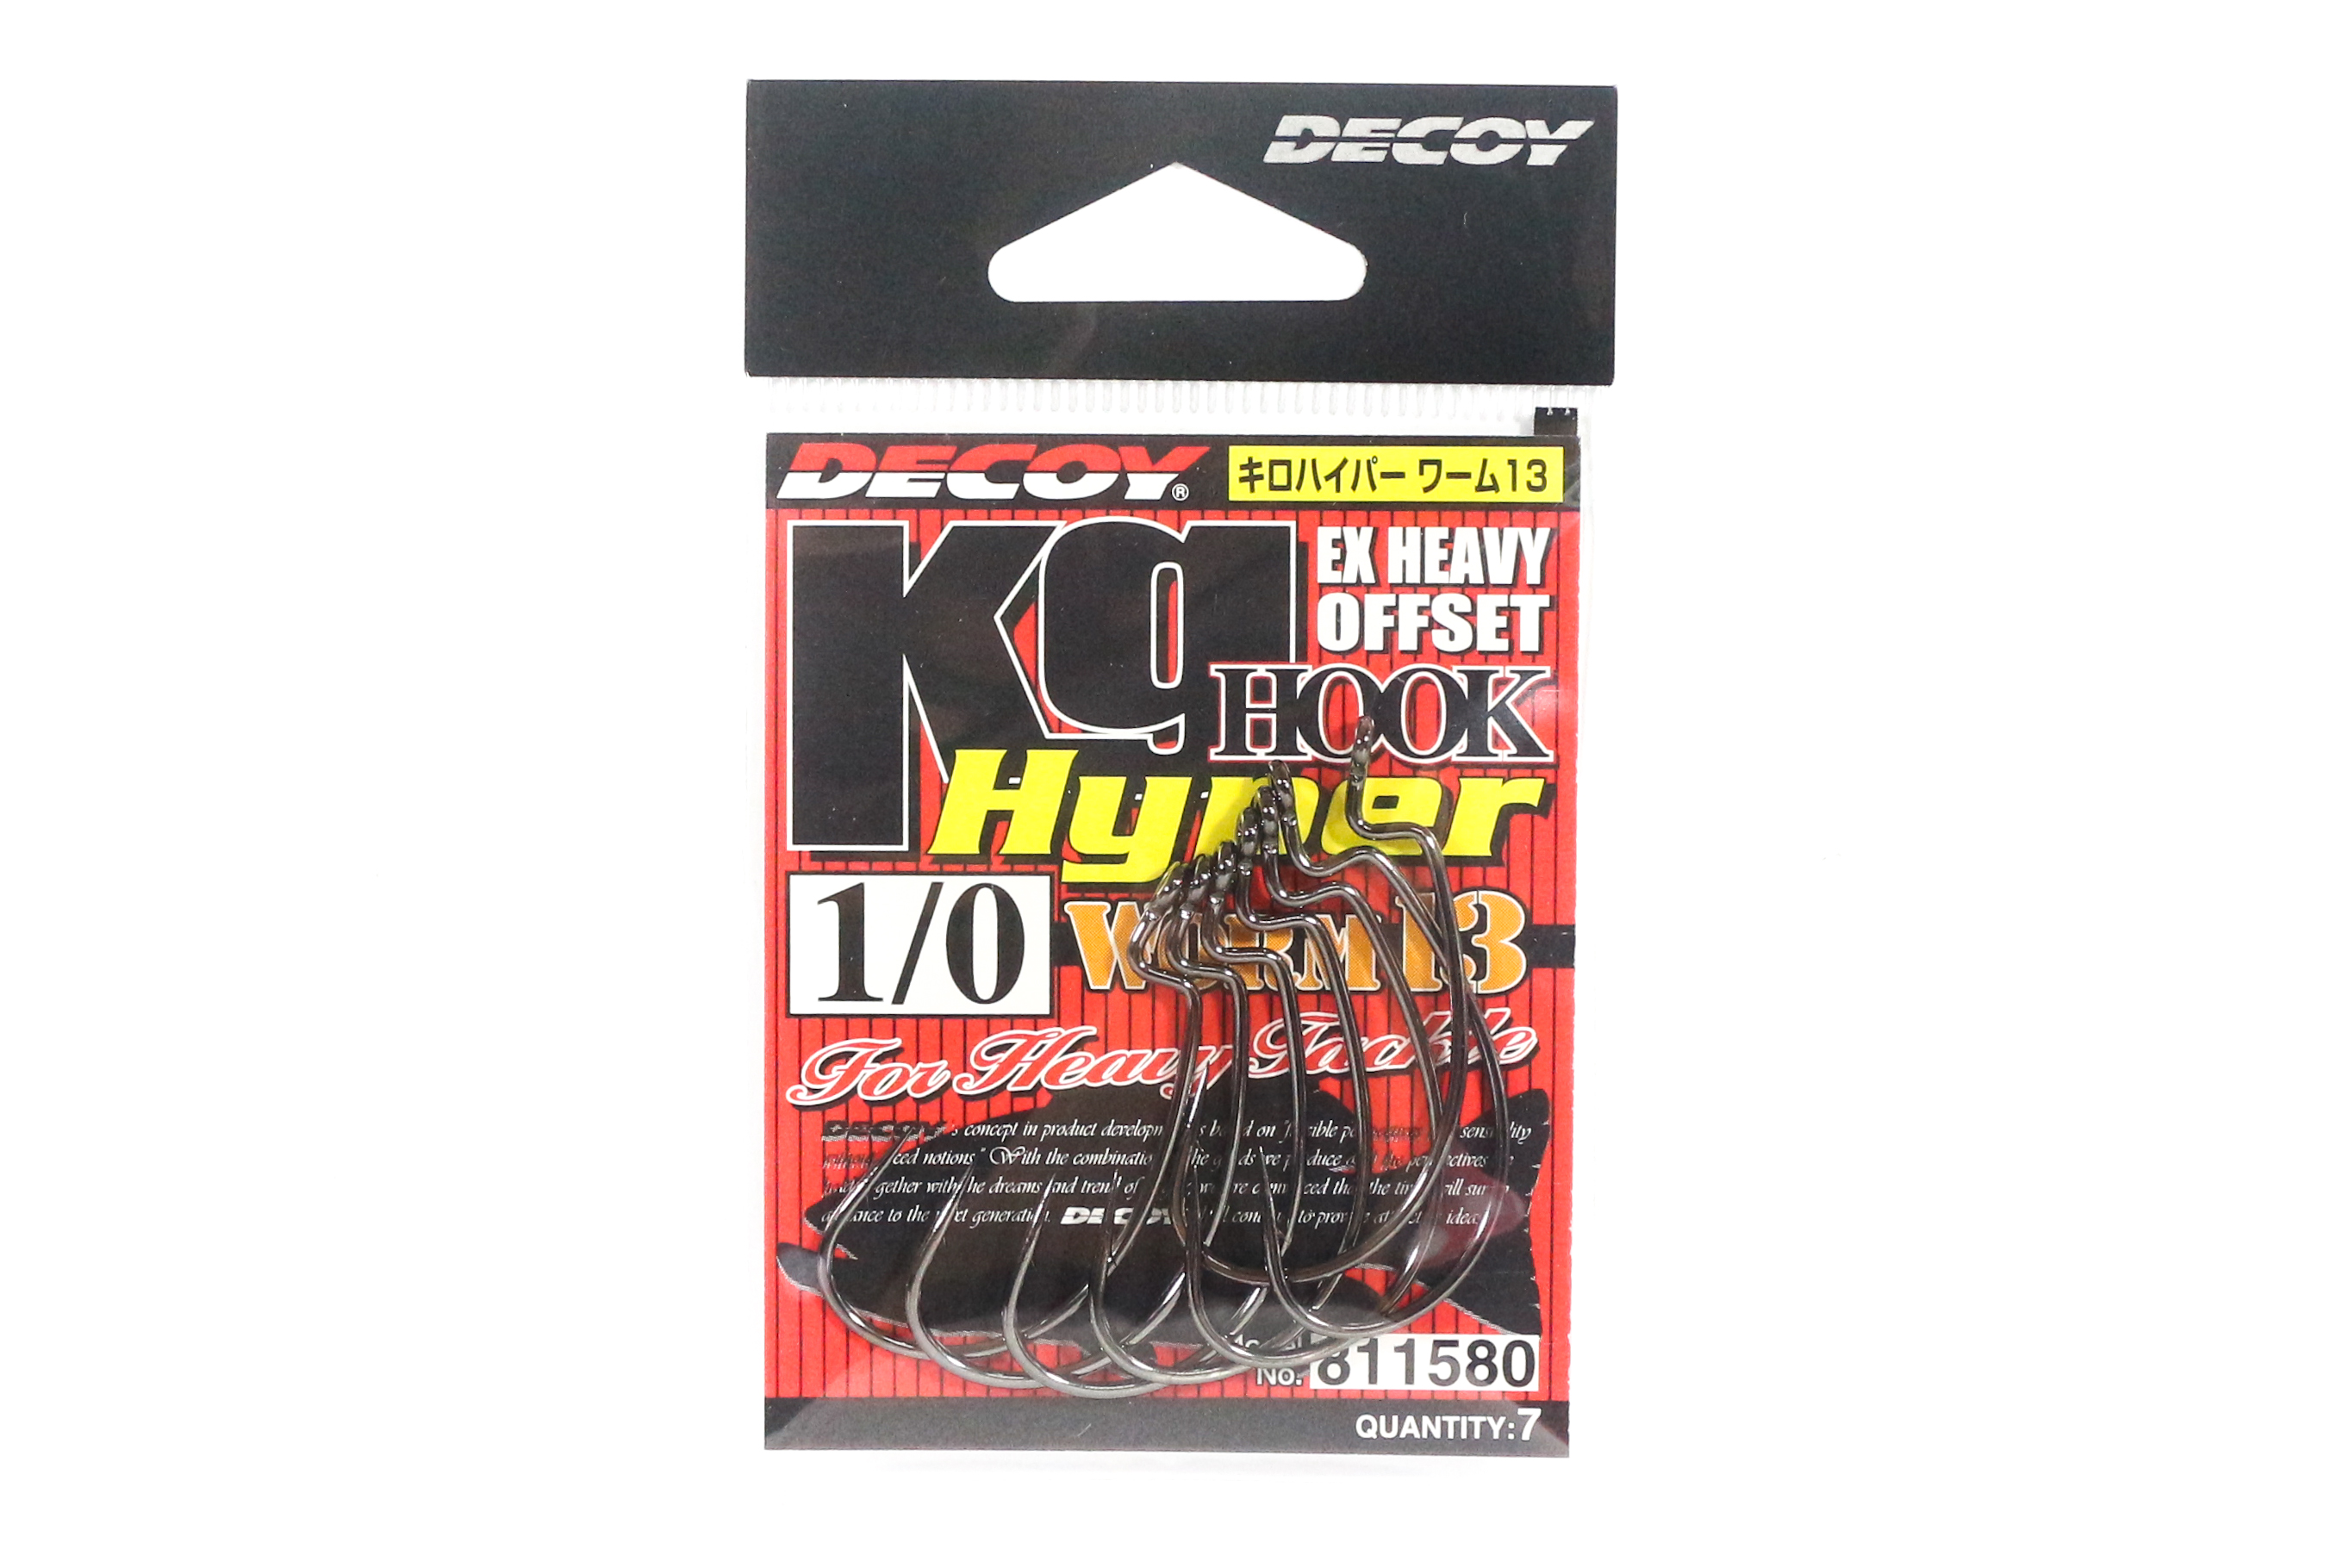 Decoy Worm 13KG Hyper Extra Heavy Duty Offset Worm Hooks Size 1/0 (1580)